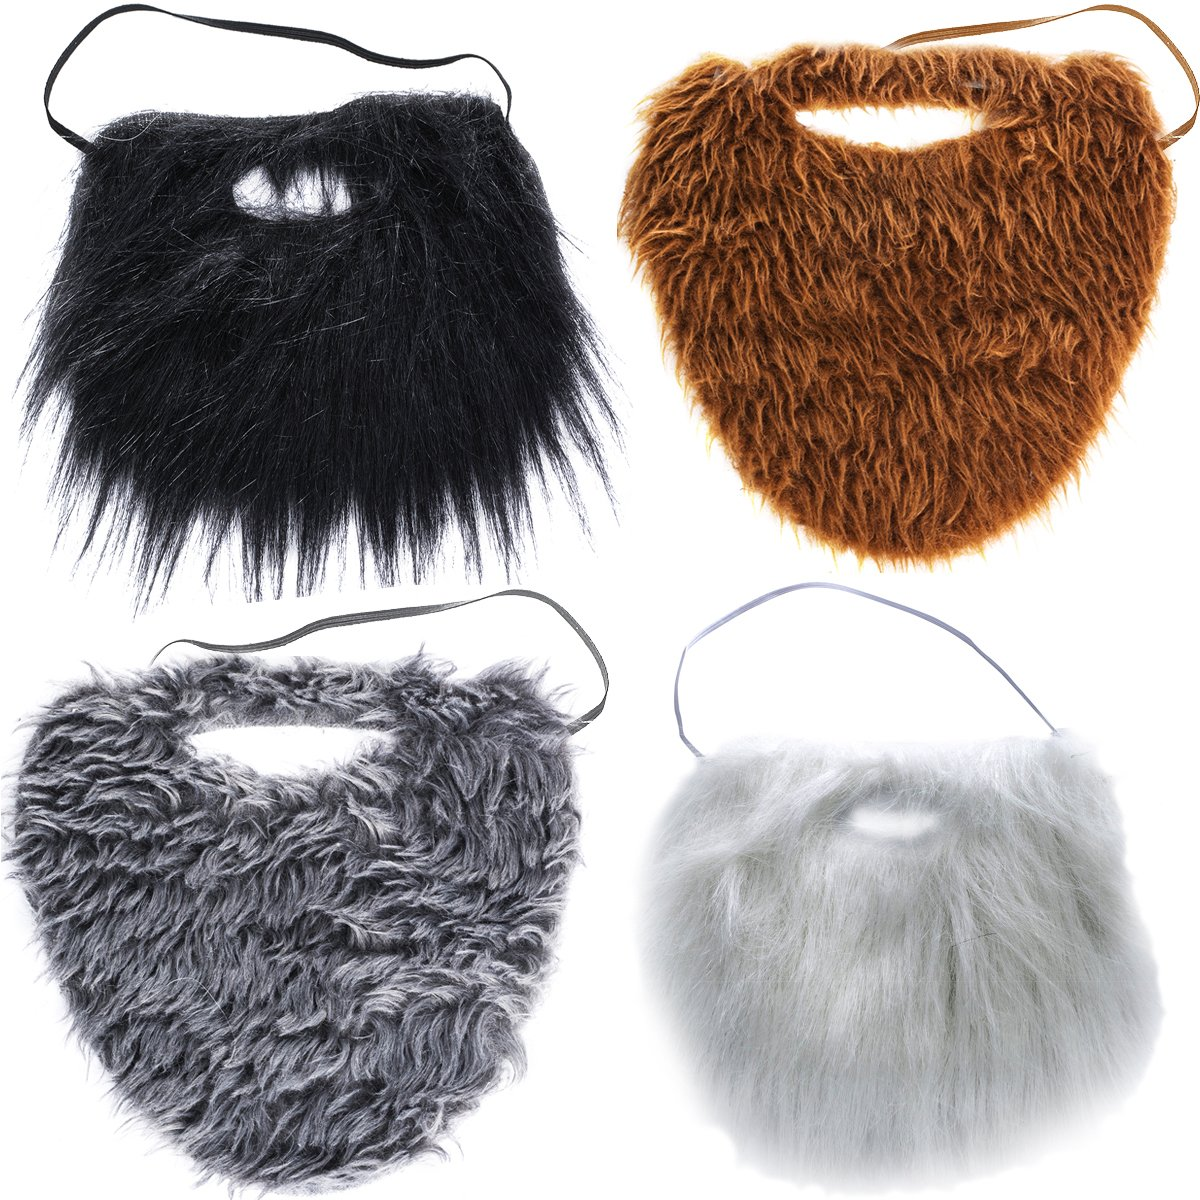 Tigerdoe Fake Beards for Adults Kids - 4 Color Pack - Costume Accessories - Beard & Mustache by Tigerdoe